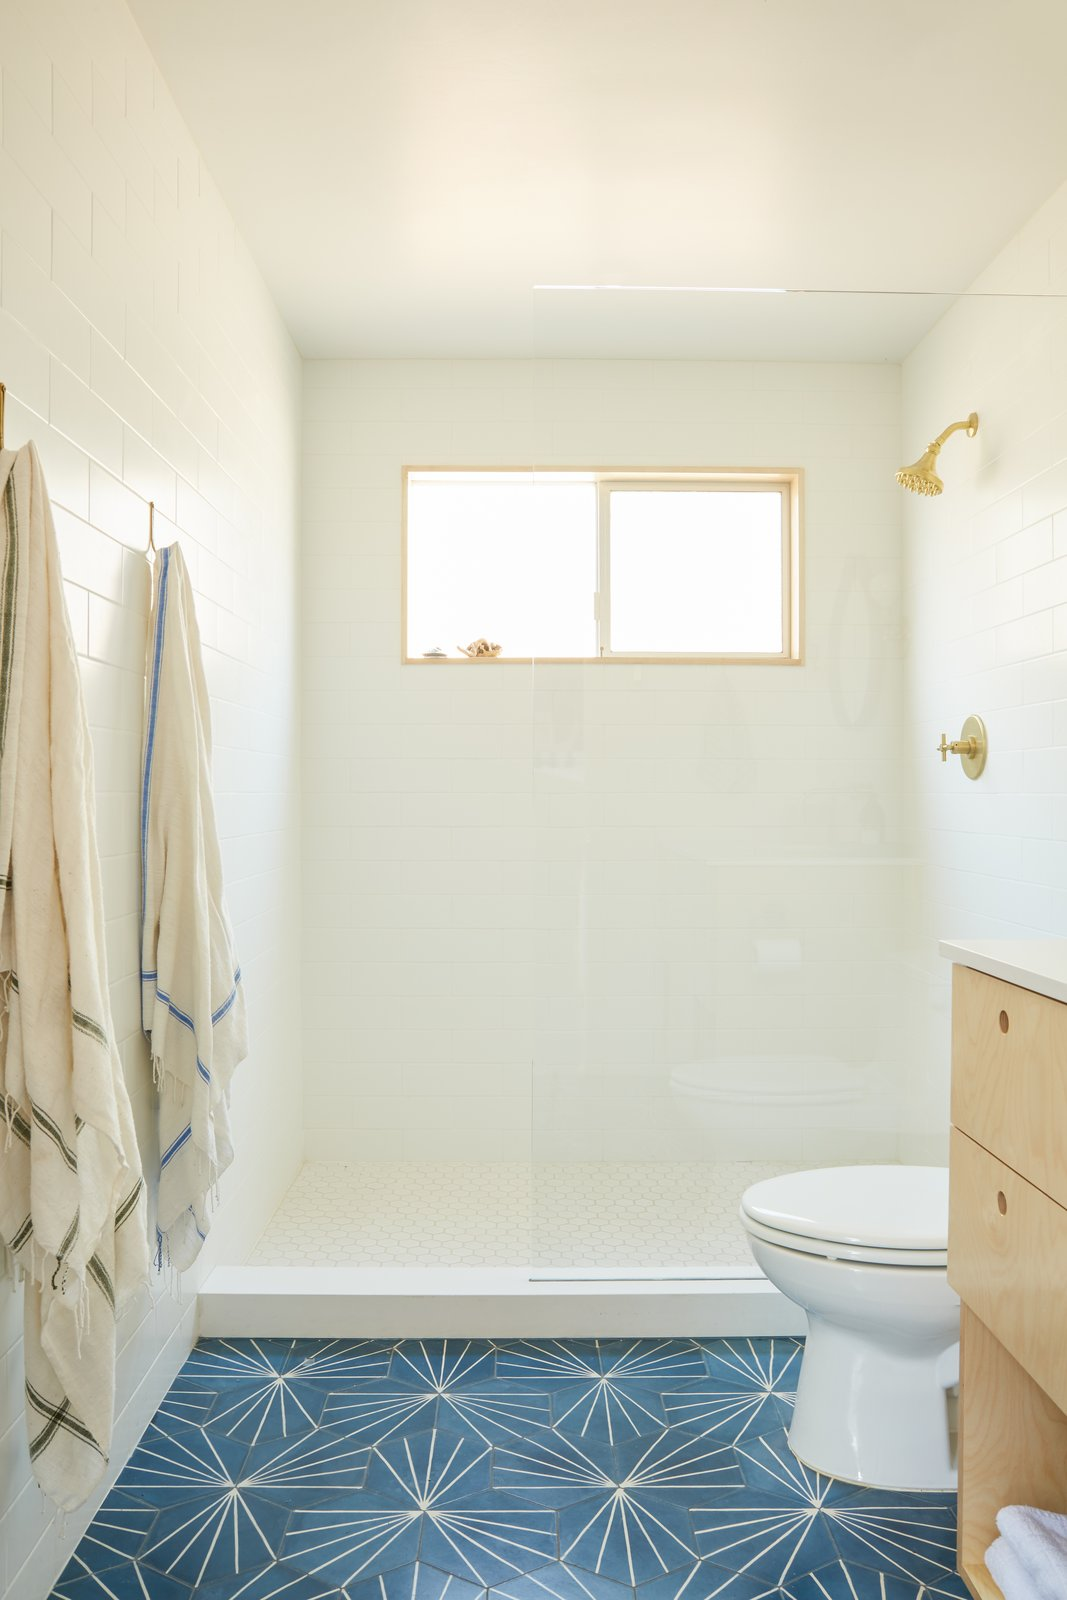 Bath Room, One Piece Toilet, Open Shower, Ceramic Tile Floor, Laminate Counter, Ceiling Lighting, and Subway Tile Wall Bathroom  Photos from Midcentury Dream House